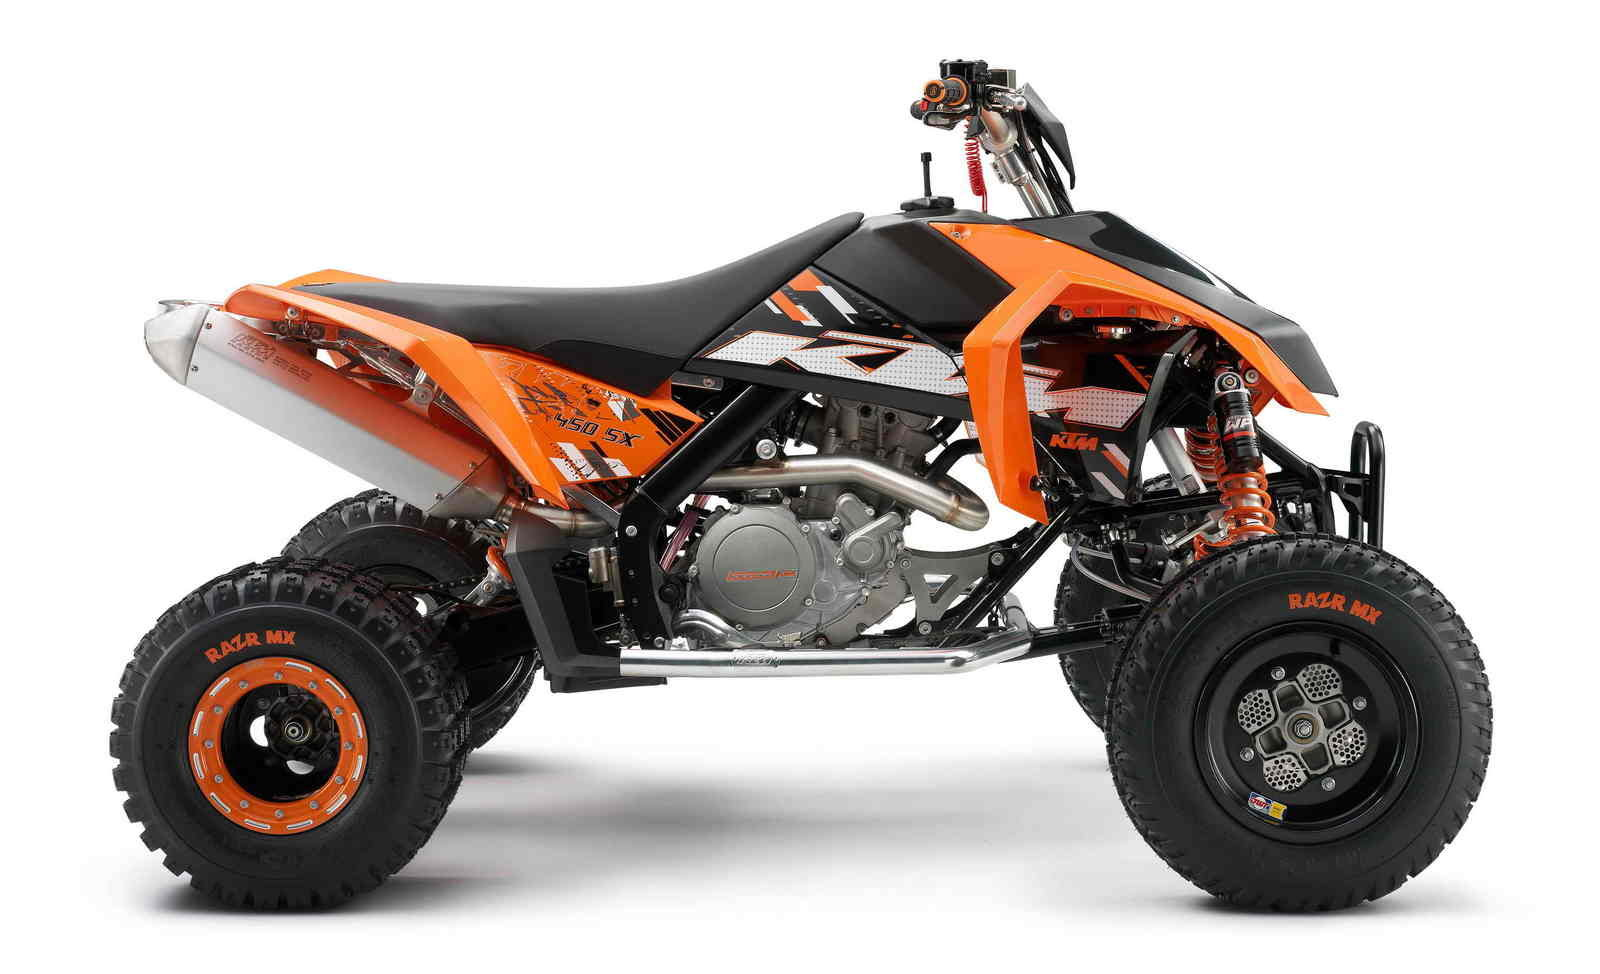 ktm 39 s sx atv introduced at spain 39 biggest motorcycle fair picture 246281 motorcycle news. Black Bedroom Furniture Sets. Home Design Ideas